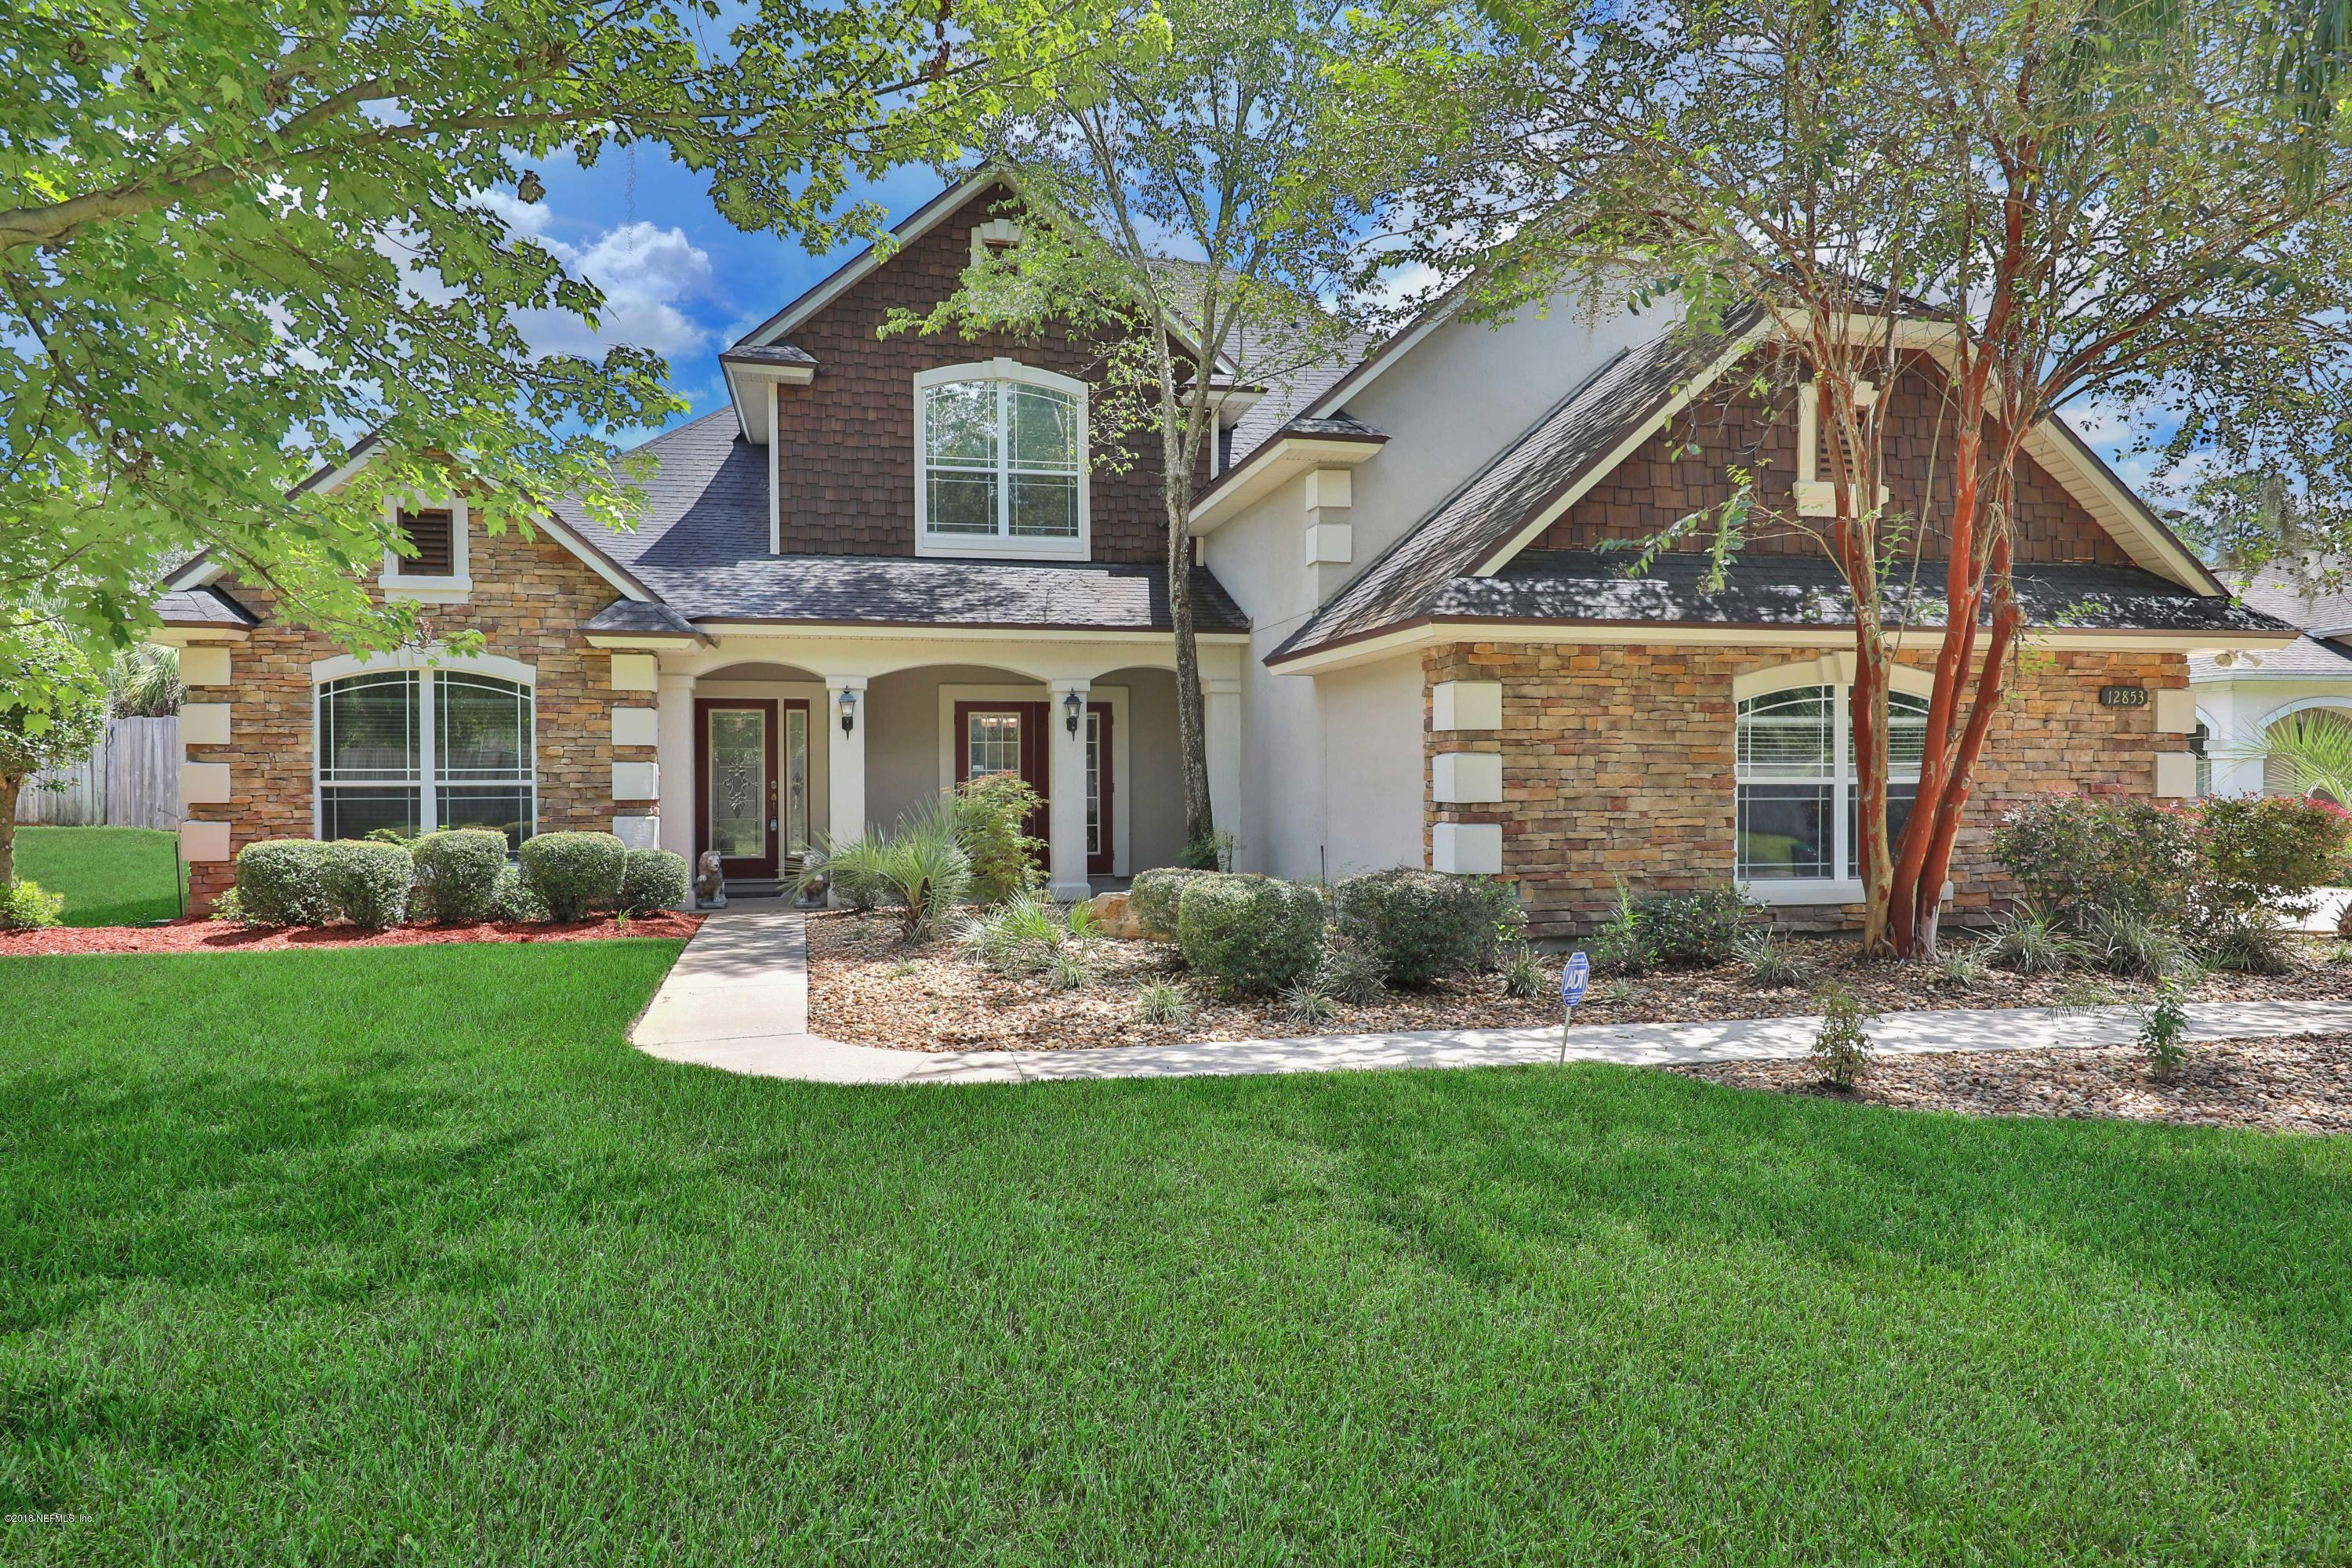 12853 CANNINGTON COVE, JACKSONVILLE, FLORIDA 32258, 5 Bedrooms Bedrooms, ,3 BathroomsBathrooms,Residential - single family,For sale,CANNINGTON COVE,955755